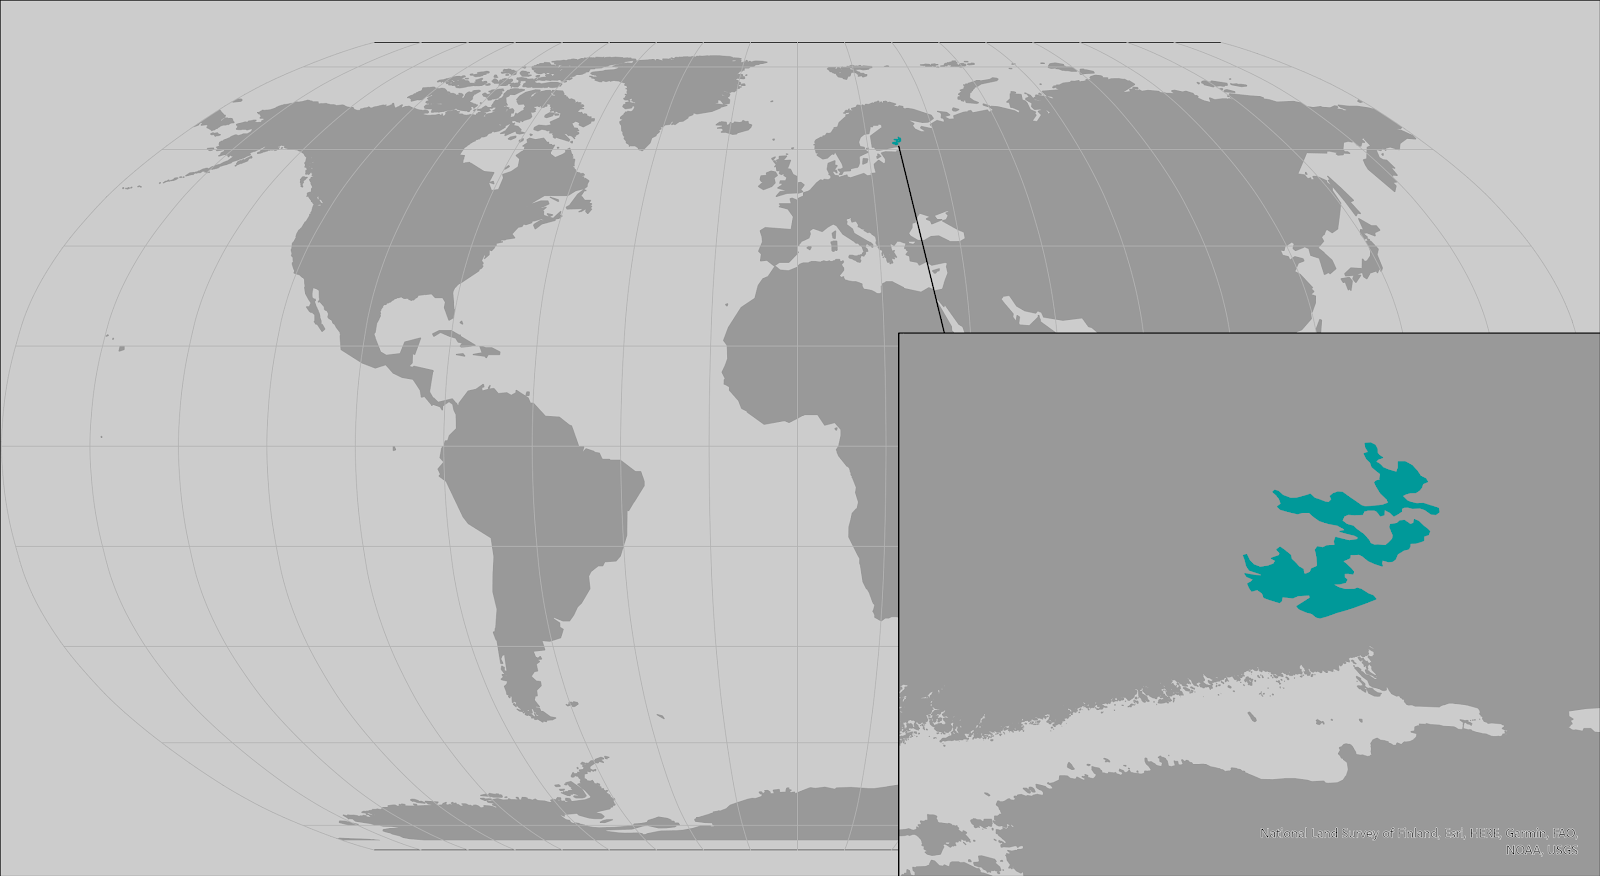 World map providing approximate representation of the Saimaa subspecies of ringed seal